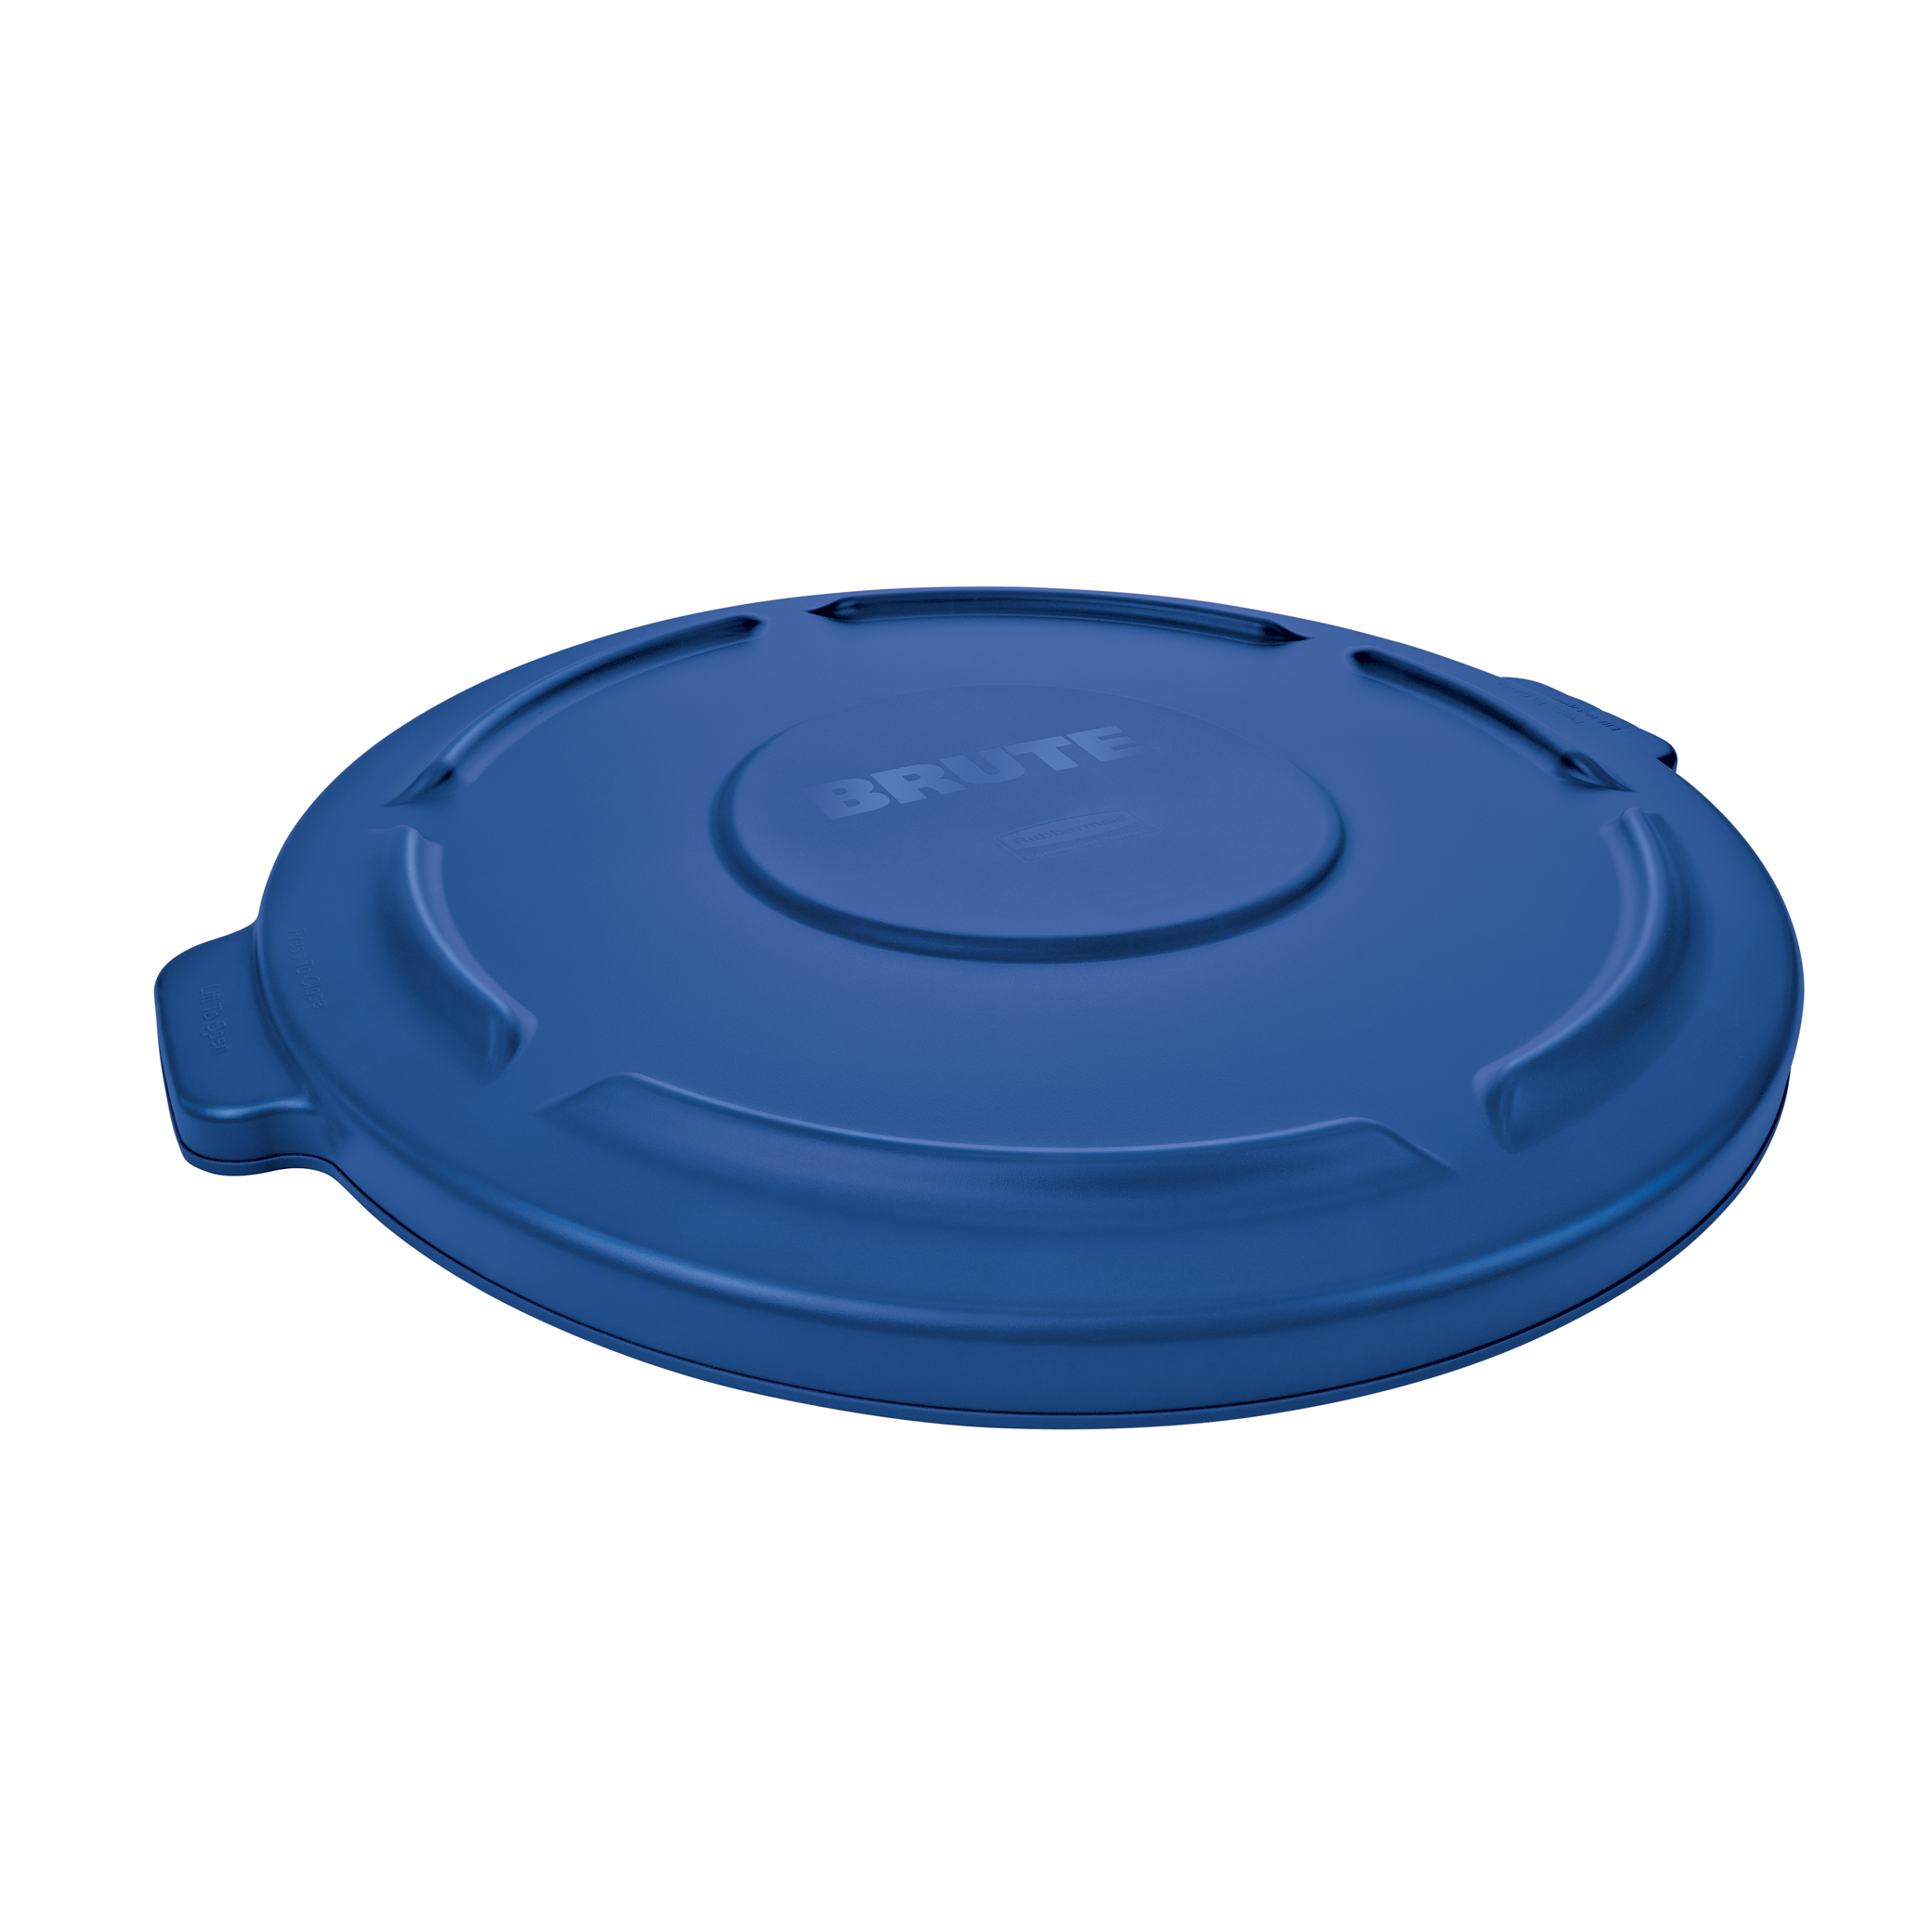 Rubbermaid Commercial Products 1779700 trash receptacle lid / top